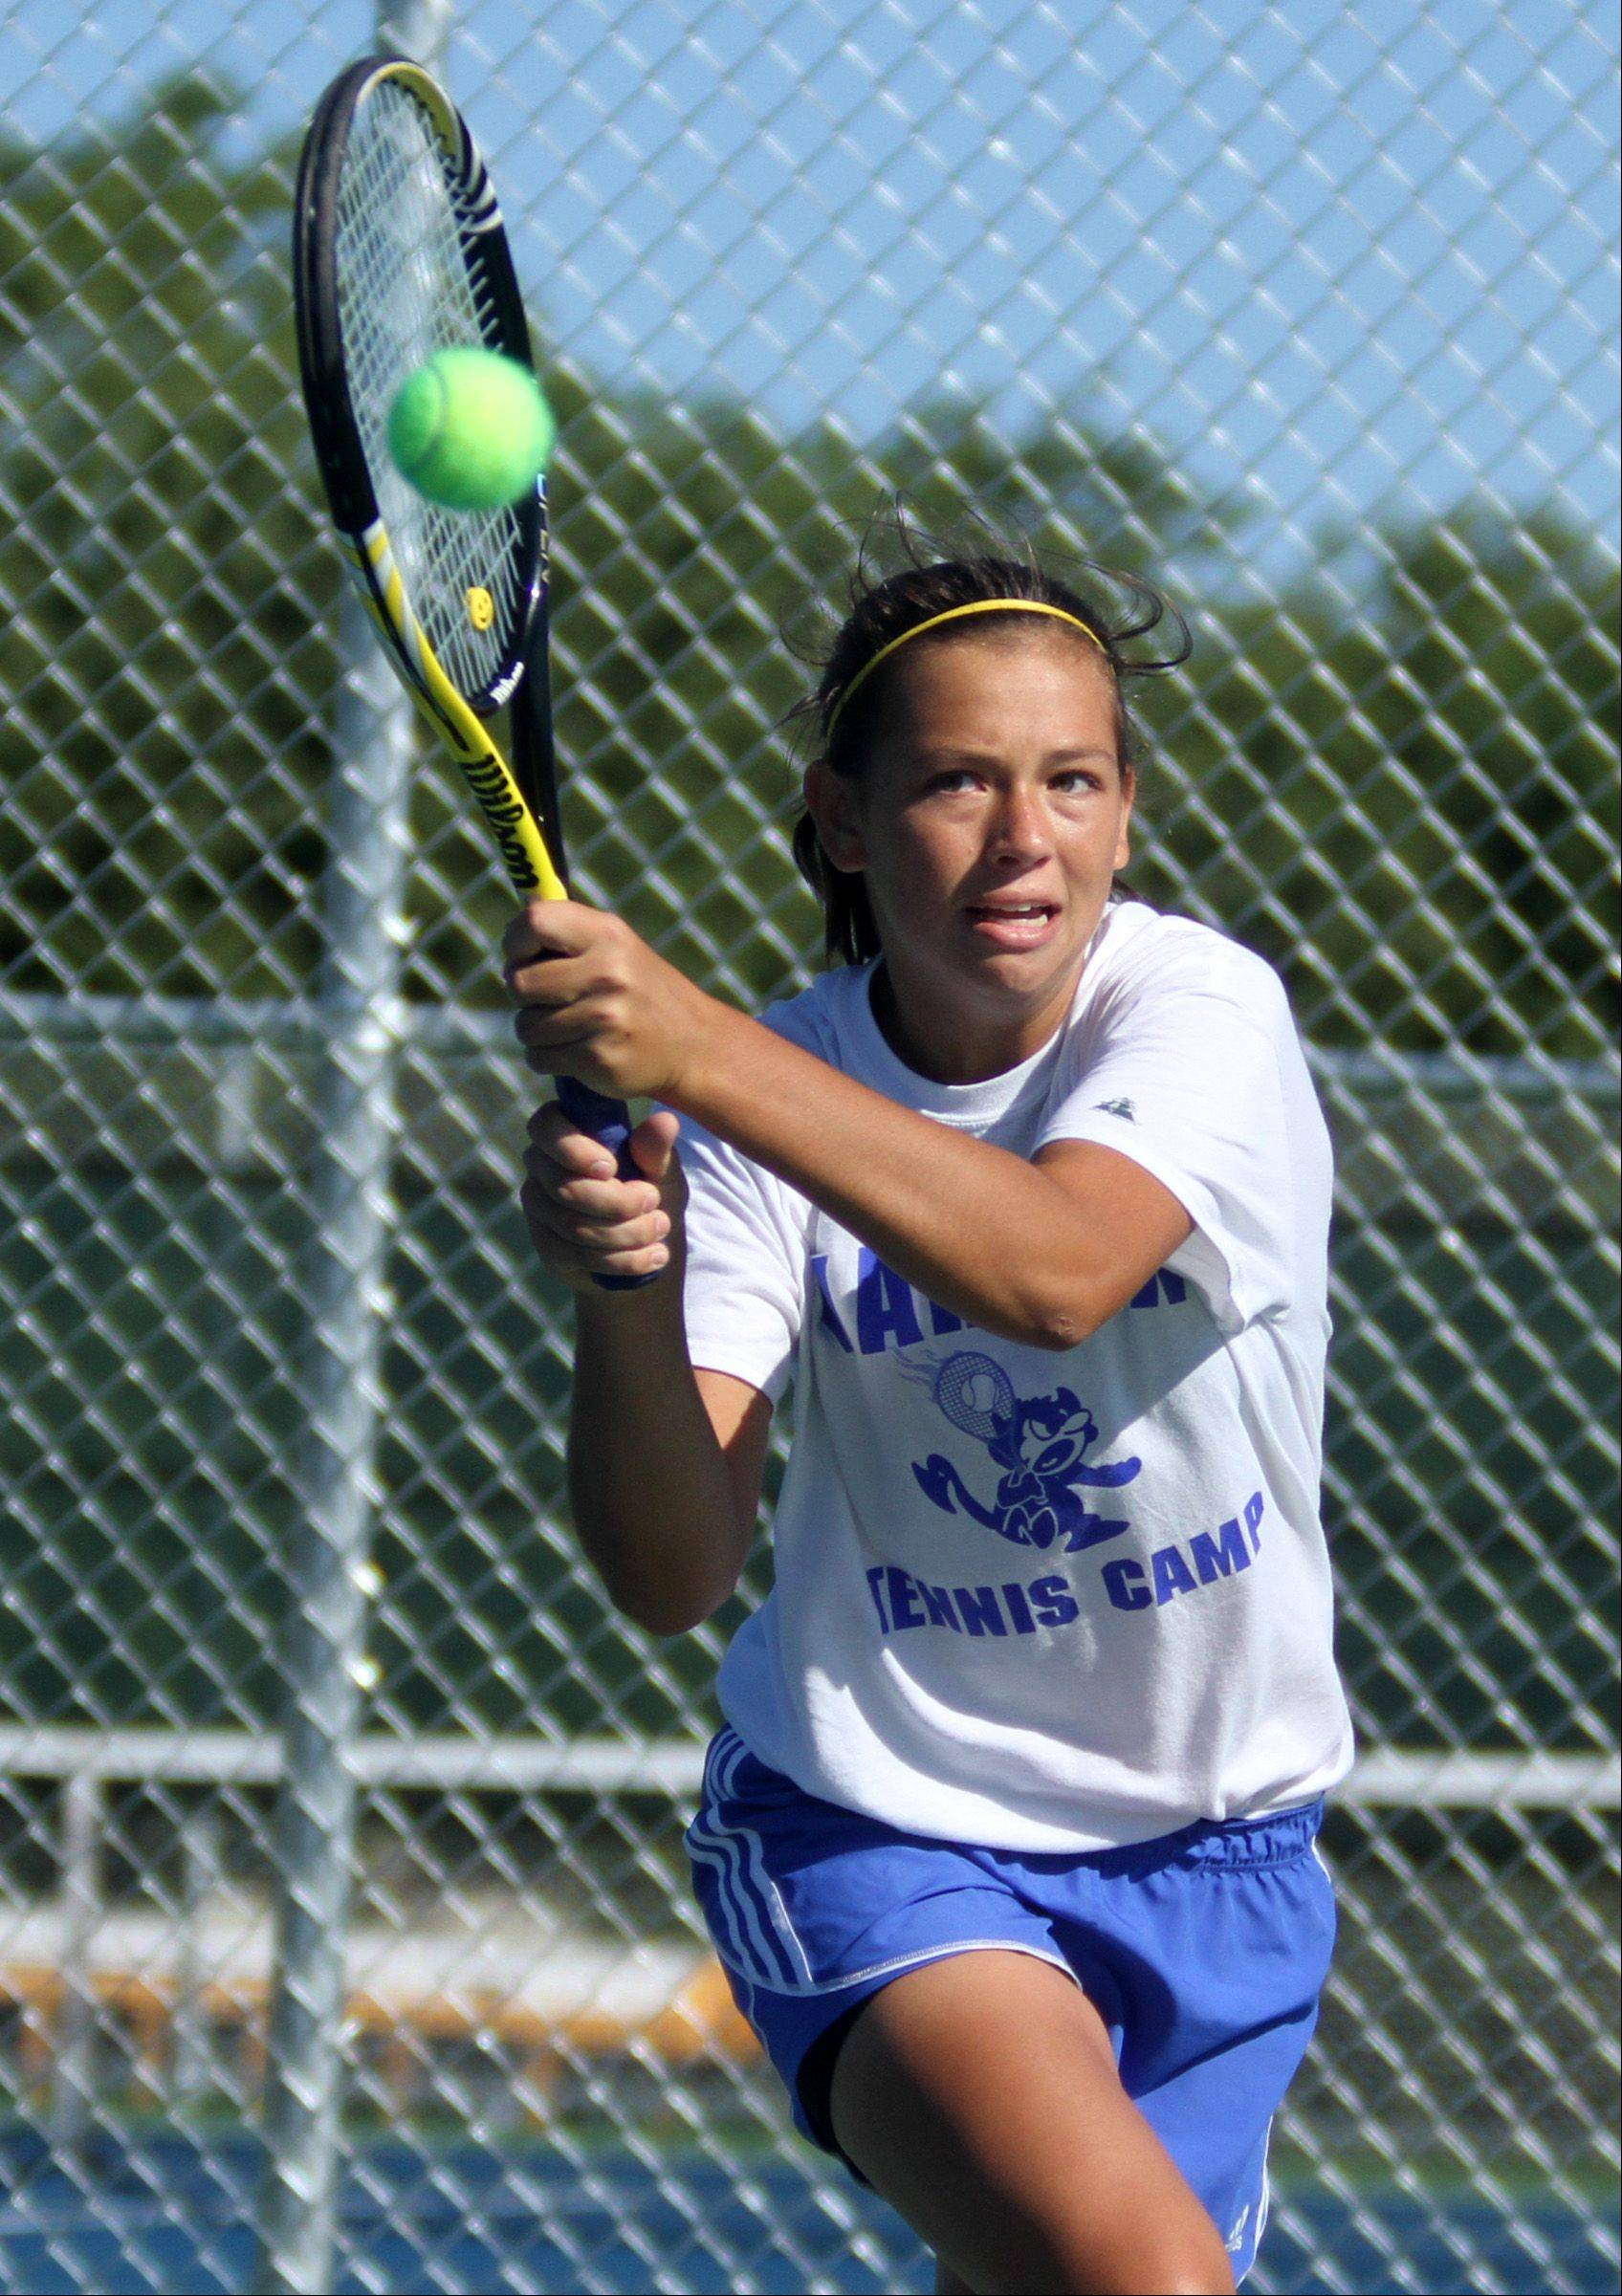 Warren Township High School's Micayla Schultz charges the ball in doubles with teammate Courtney Sunday against Libertyville at Buffalo Grove High School girls tennis invitational on Saturday, September 8.